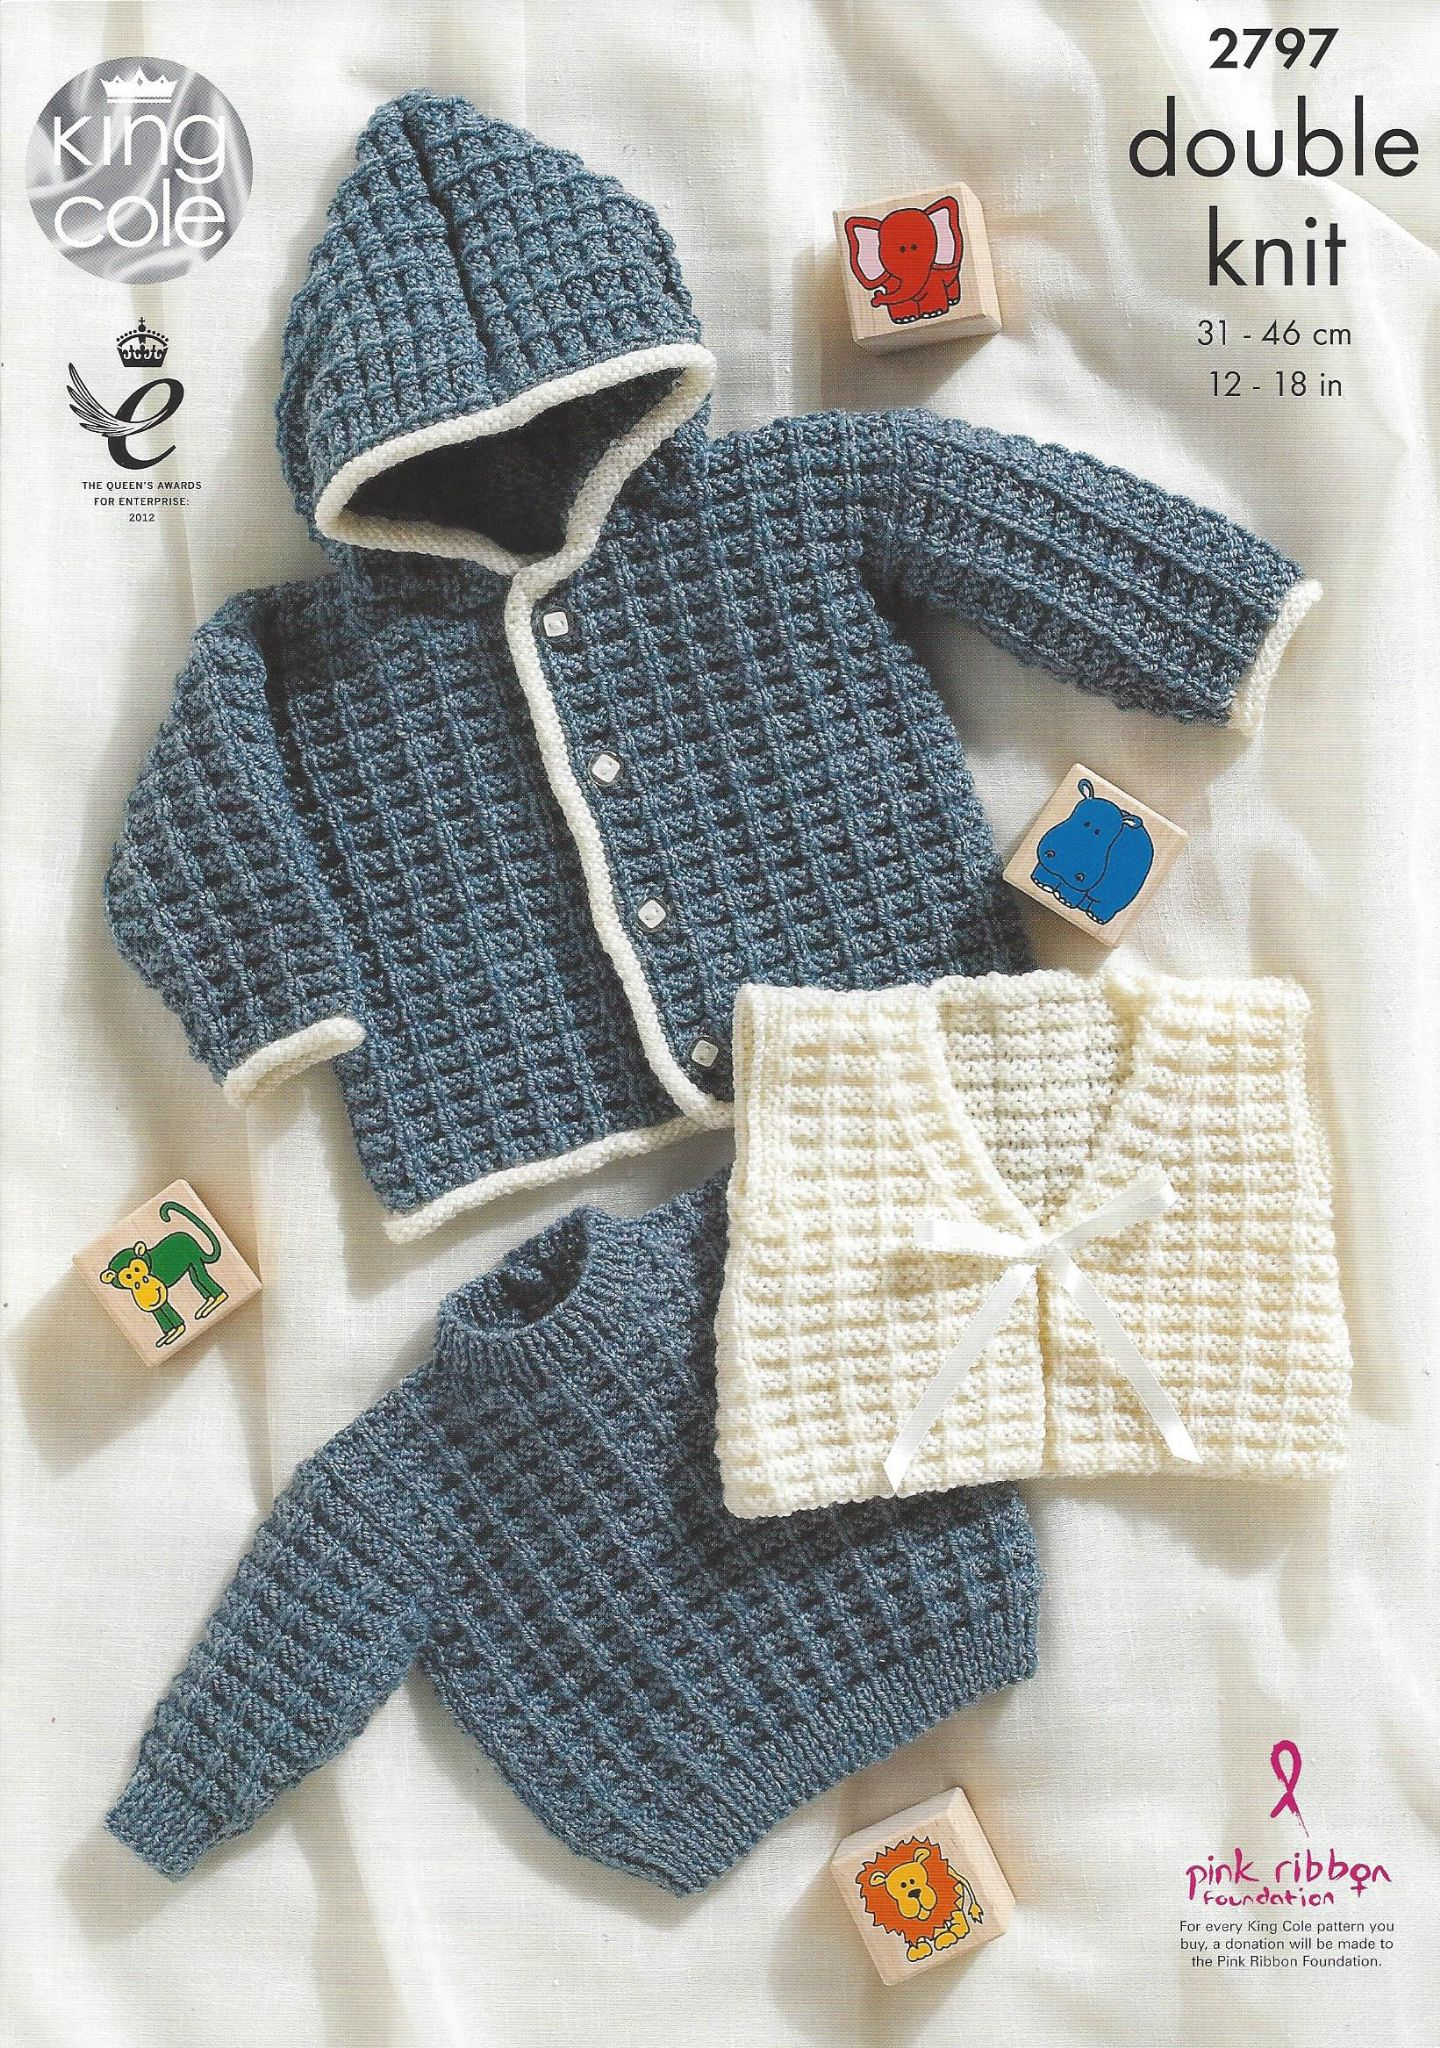 King Cole Baby DK Knitting Pattern - 2797 Sweater Jacket & Gilet